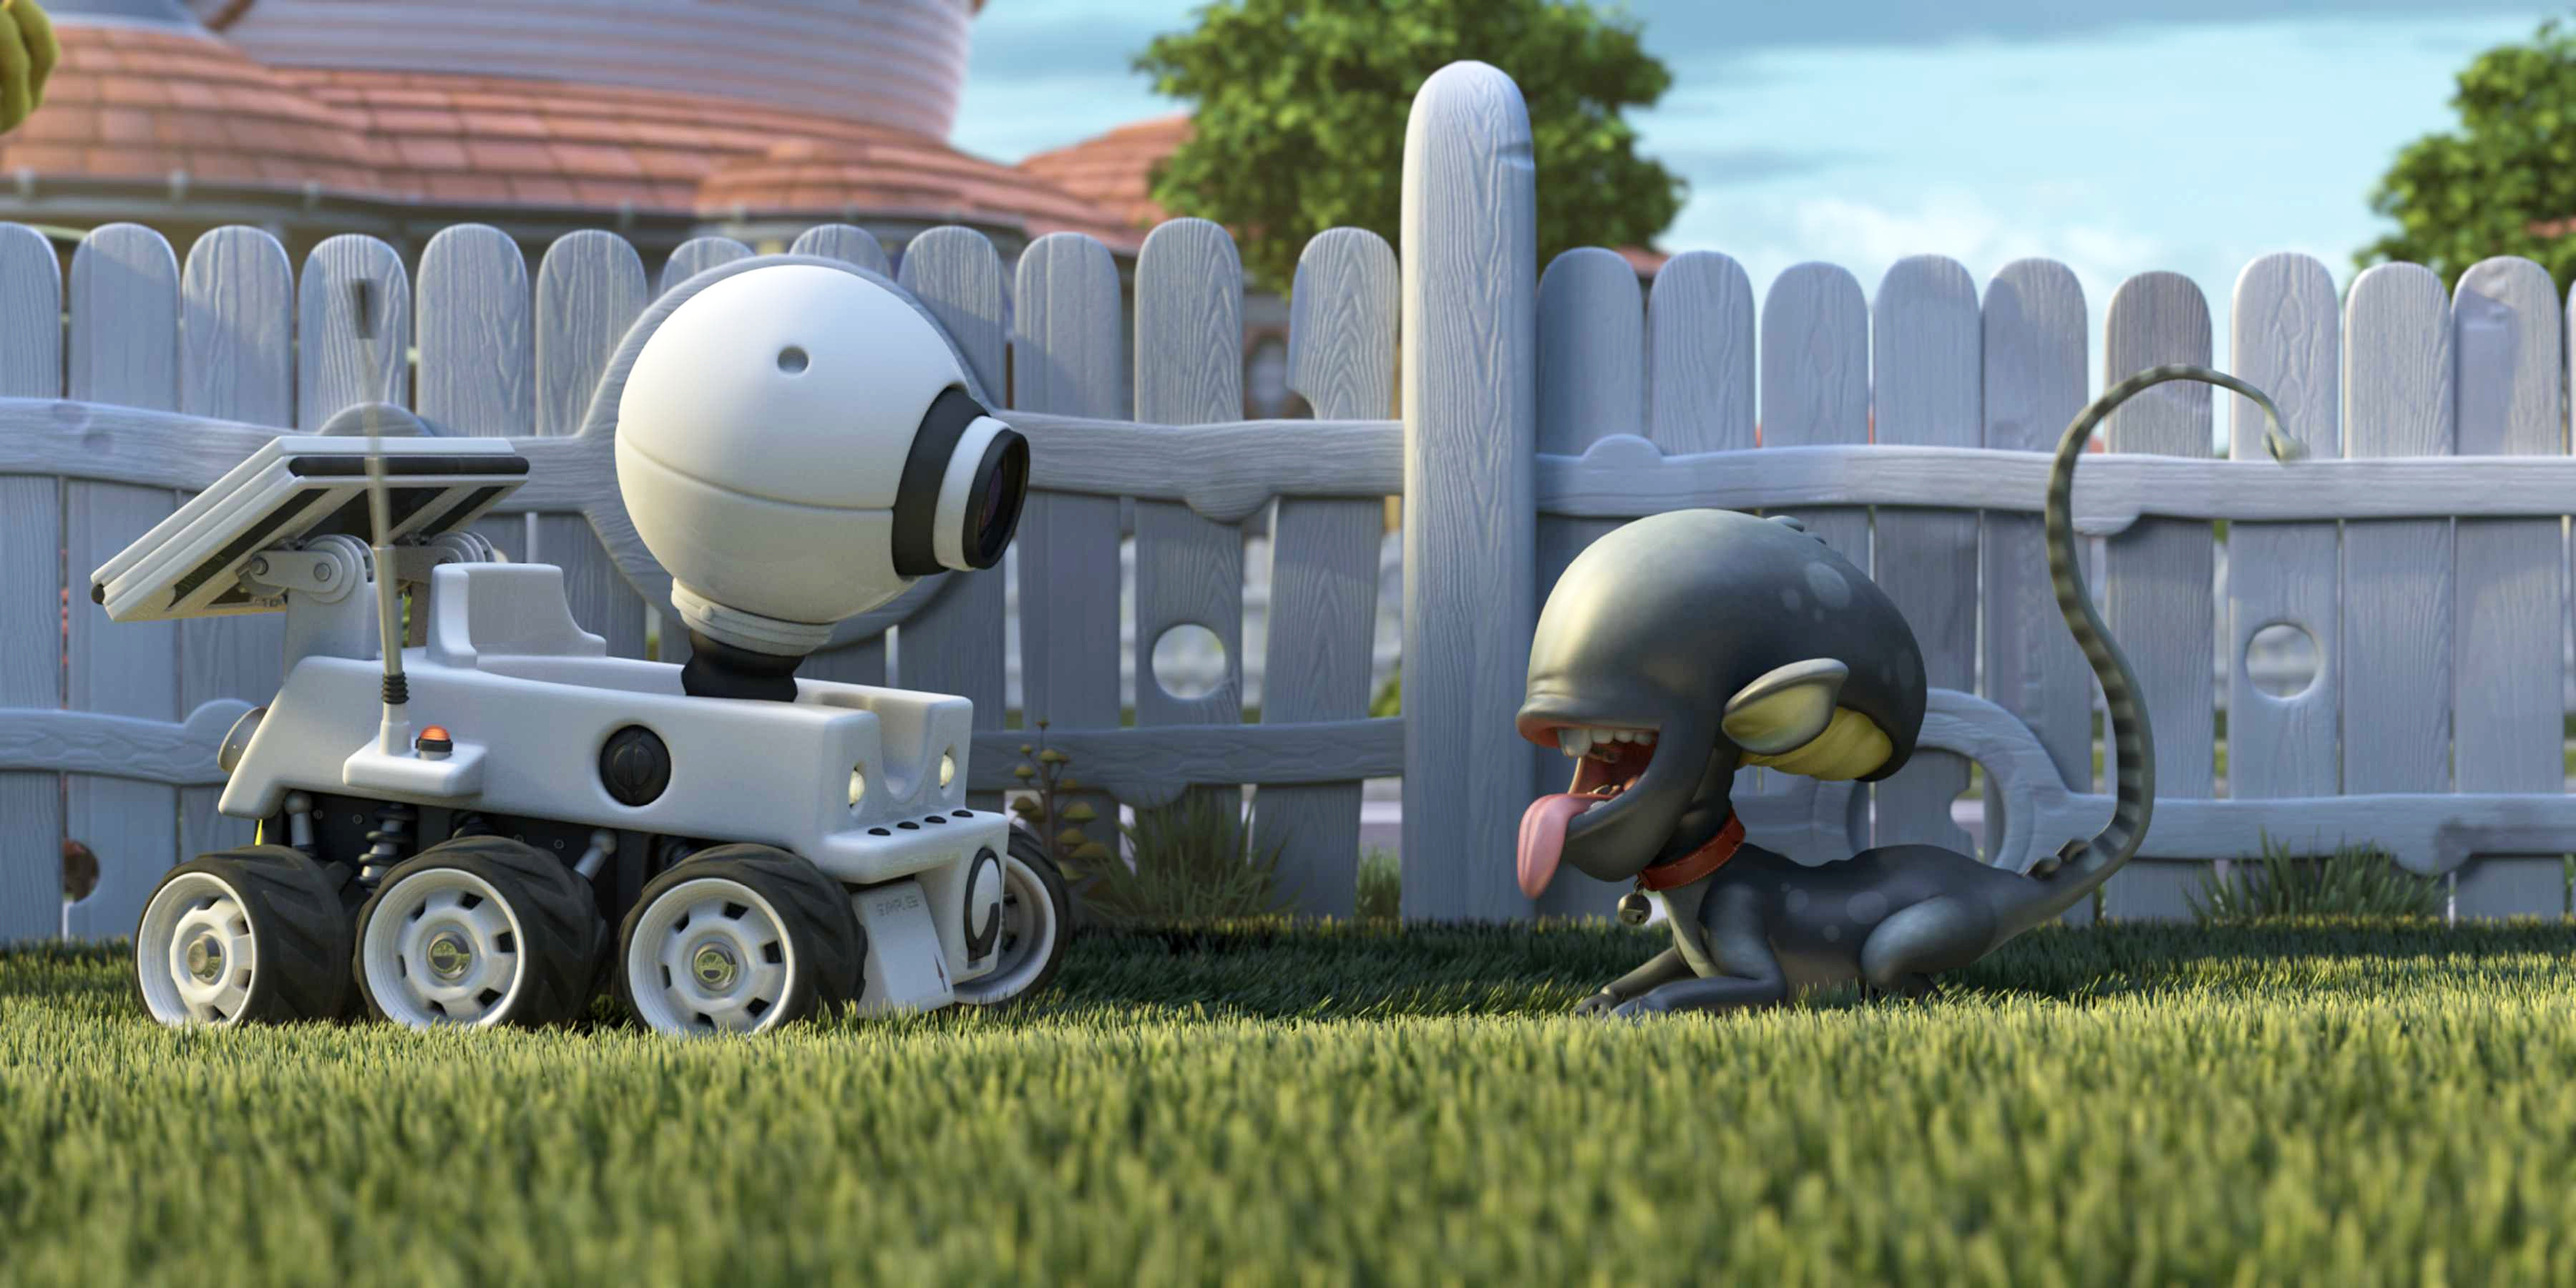 The scene-stealing non-humanoids - Rover the mechanical rover and Ripley the Alien-modeled puppy in Planet 51 (2009)